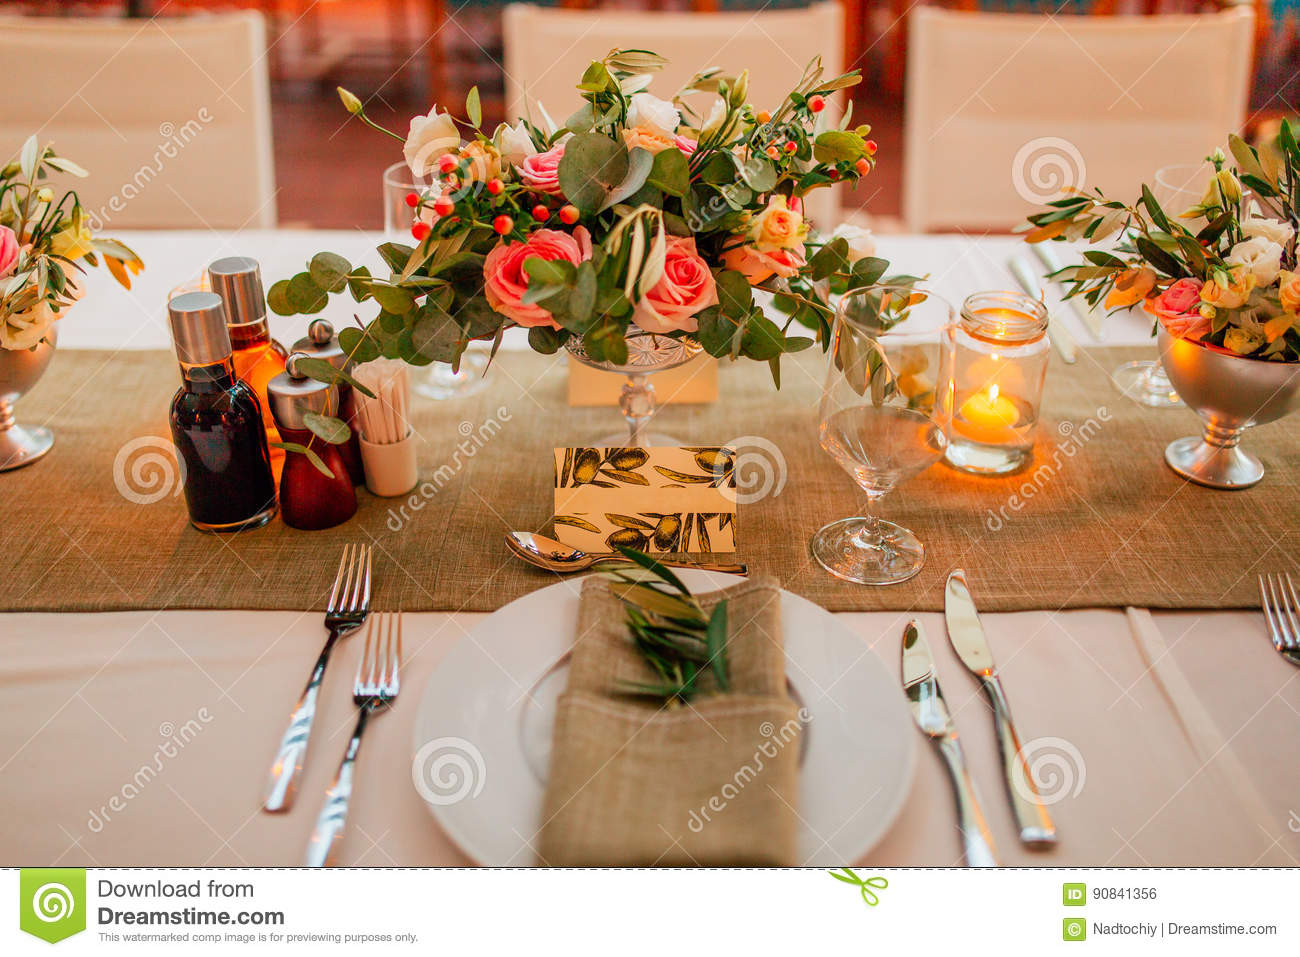 Flower Compositions On The Wedding Table In Rustic Style Wedding